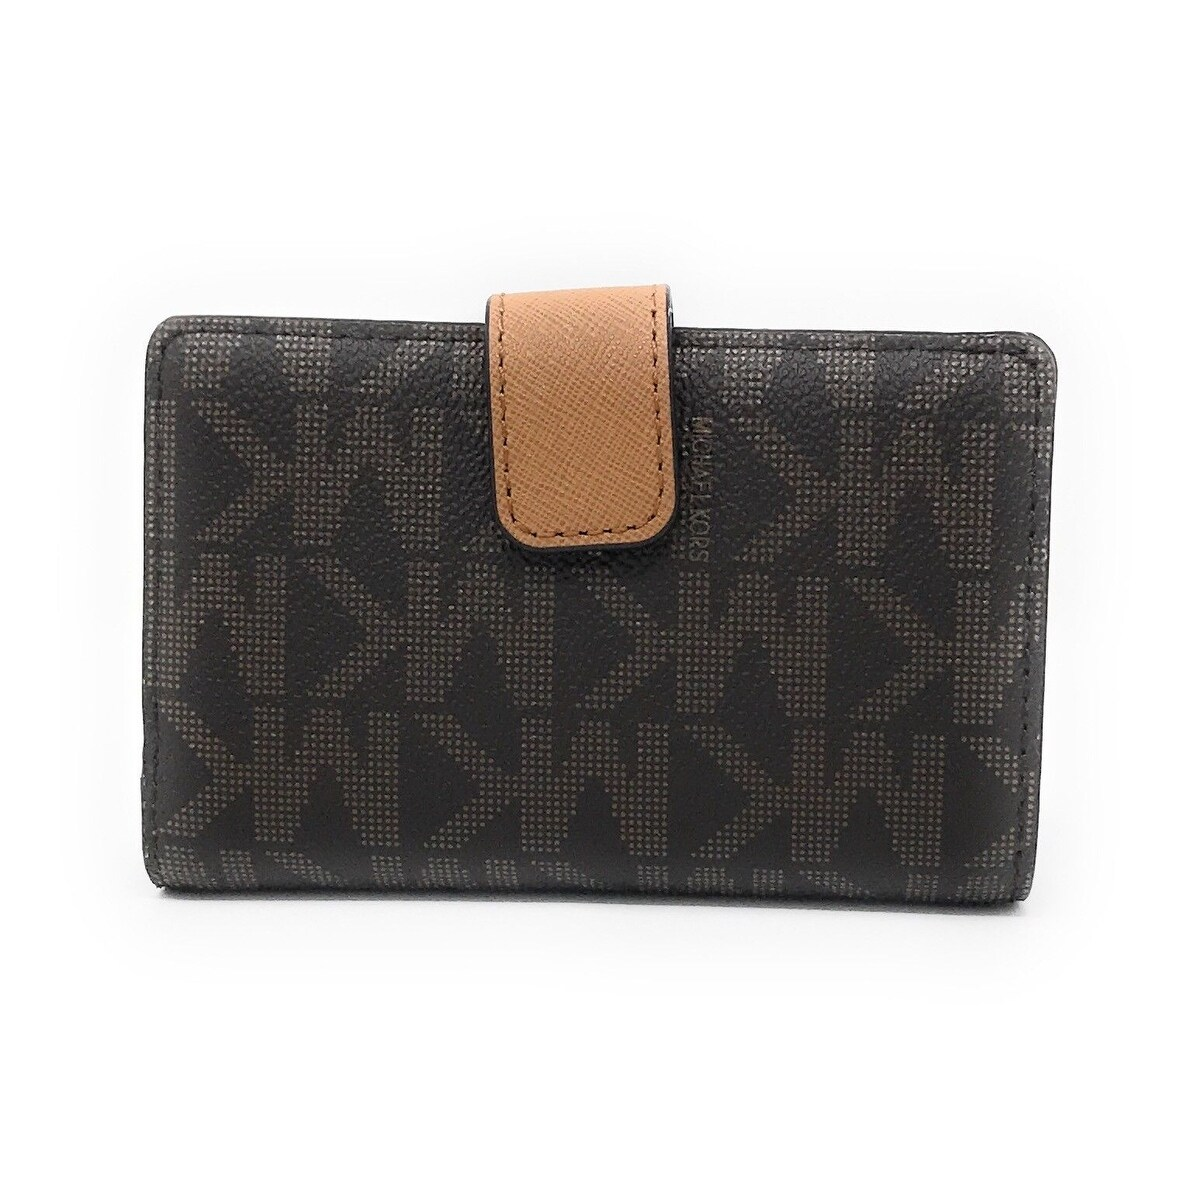 ec206a96f0aa Shop Michael Kors Jet Set Travel Bifold Zip Coin Wallet - Brown/Acorn - Free  Shipping Today - Overstock - 18621567